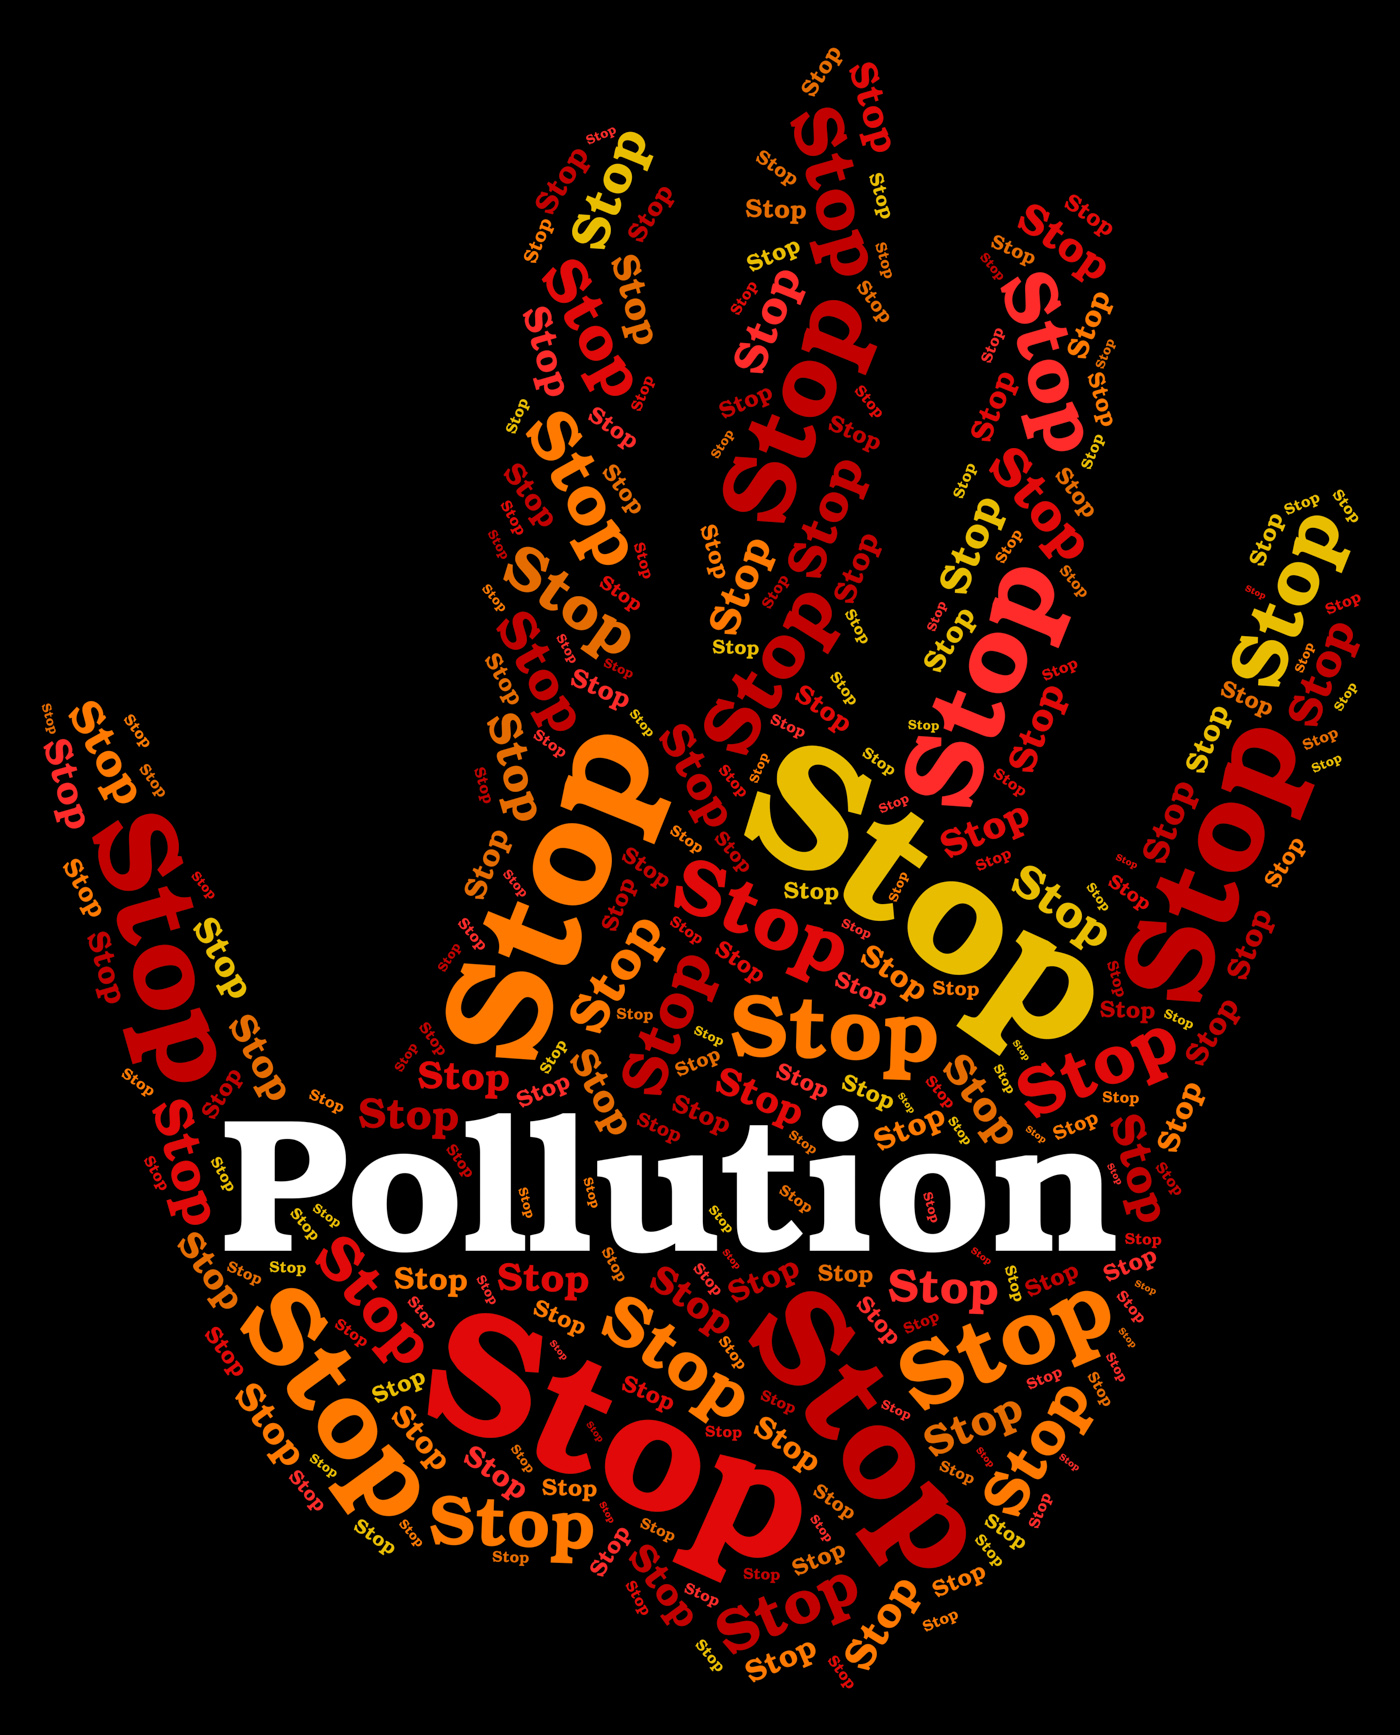 Stop pollution represents air polution and caution photo